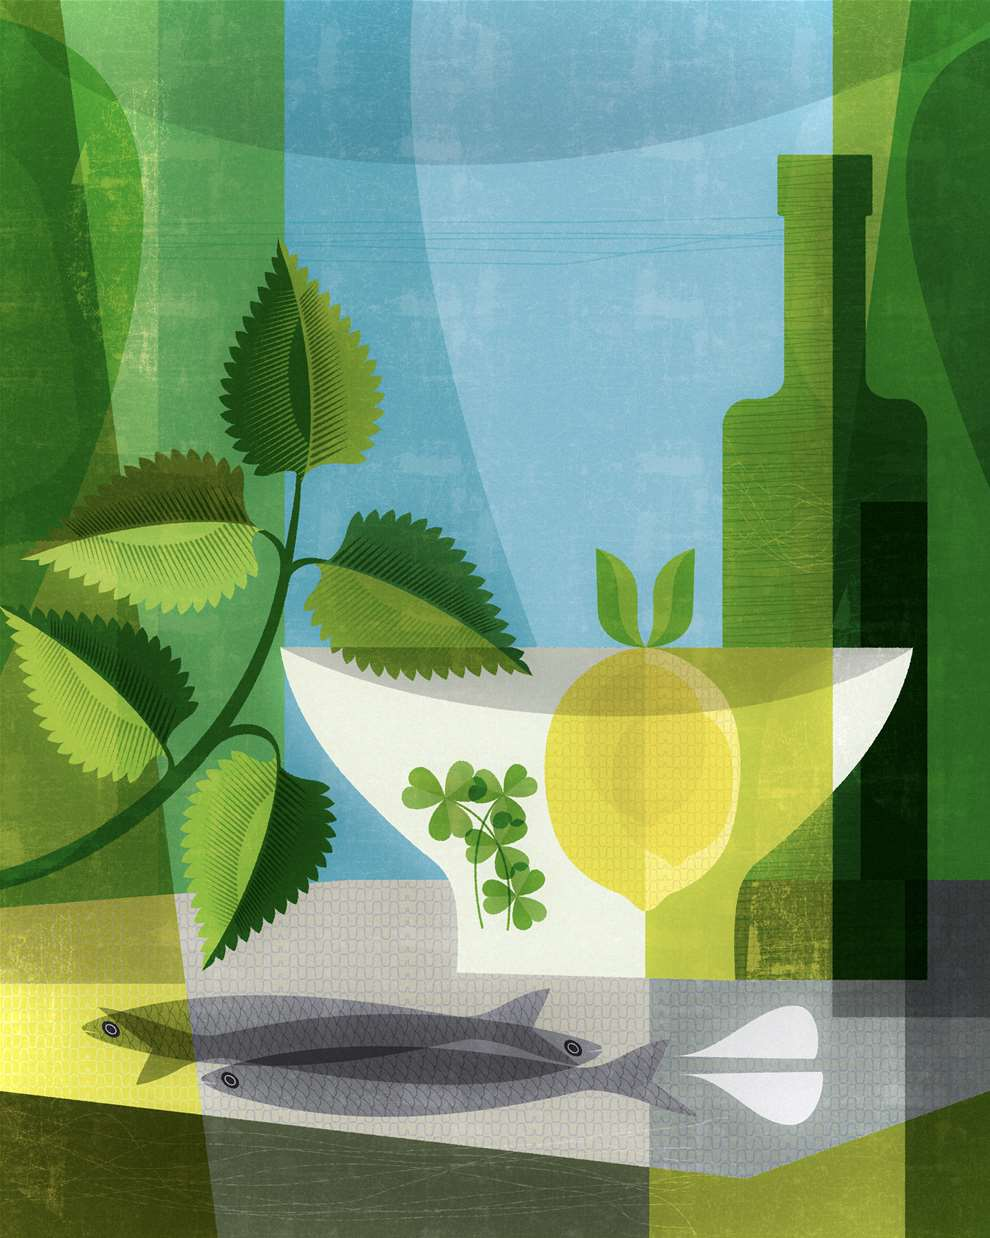 Paul Wearing, Digital Playful Textural Summery Illustration of a Cocktail, with green and yellow overlapping shapes.